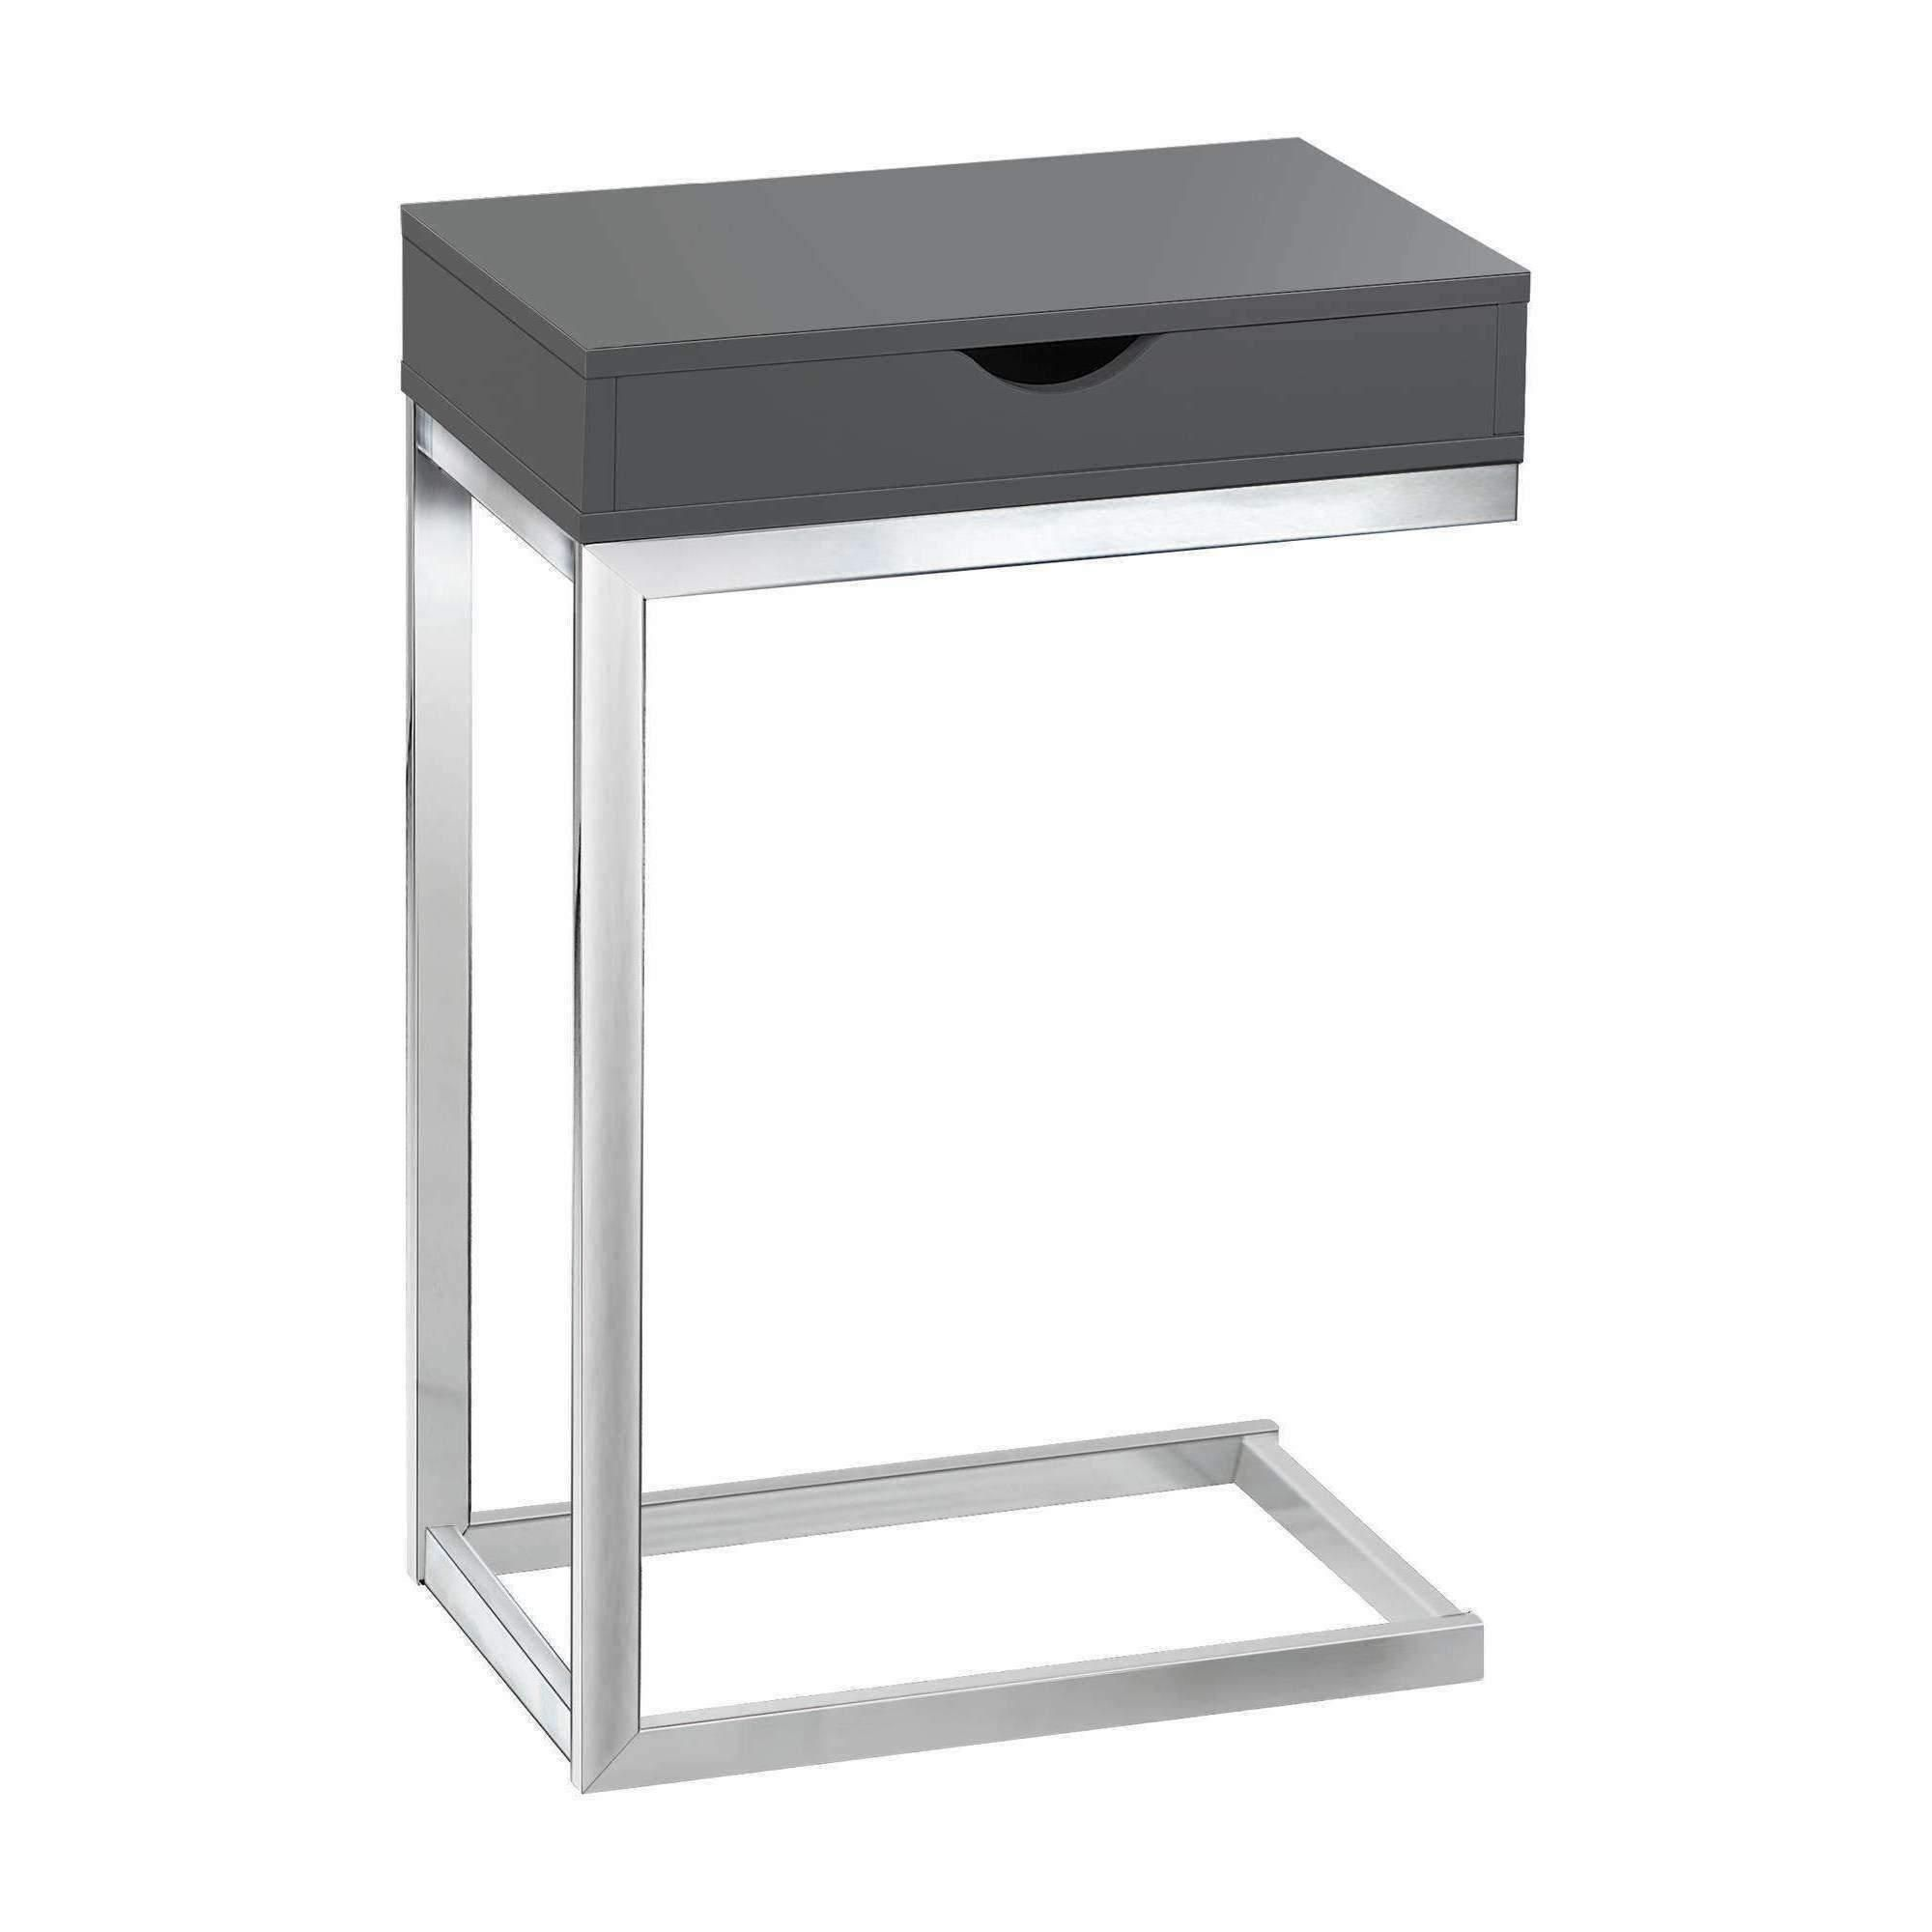 accent table chrome metal glossy grey with drawer products target margate wooden side designs small leather armchair teak patio telephone ikea distressed wood coffee west elm coat